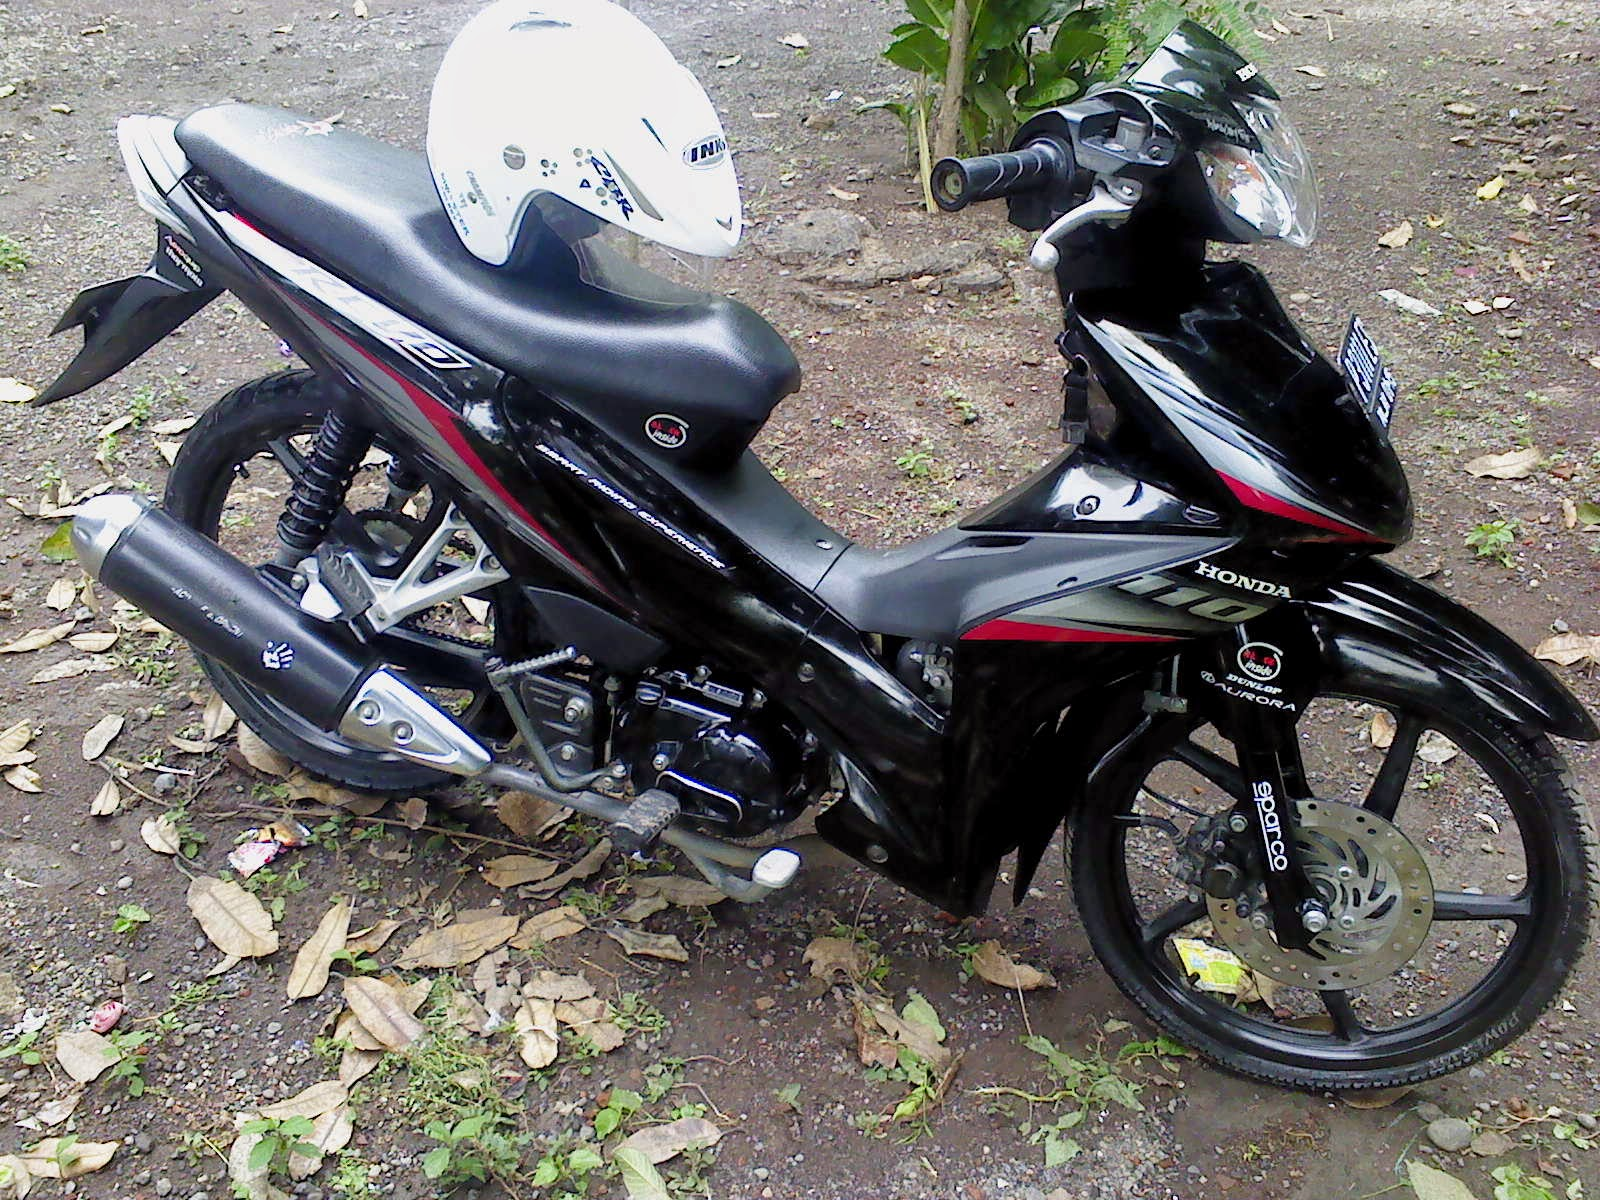 Top Modifikasi Motor Revo Terbaru